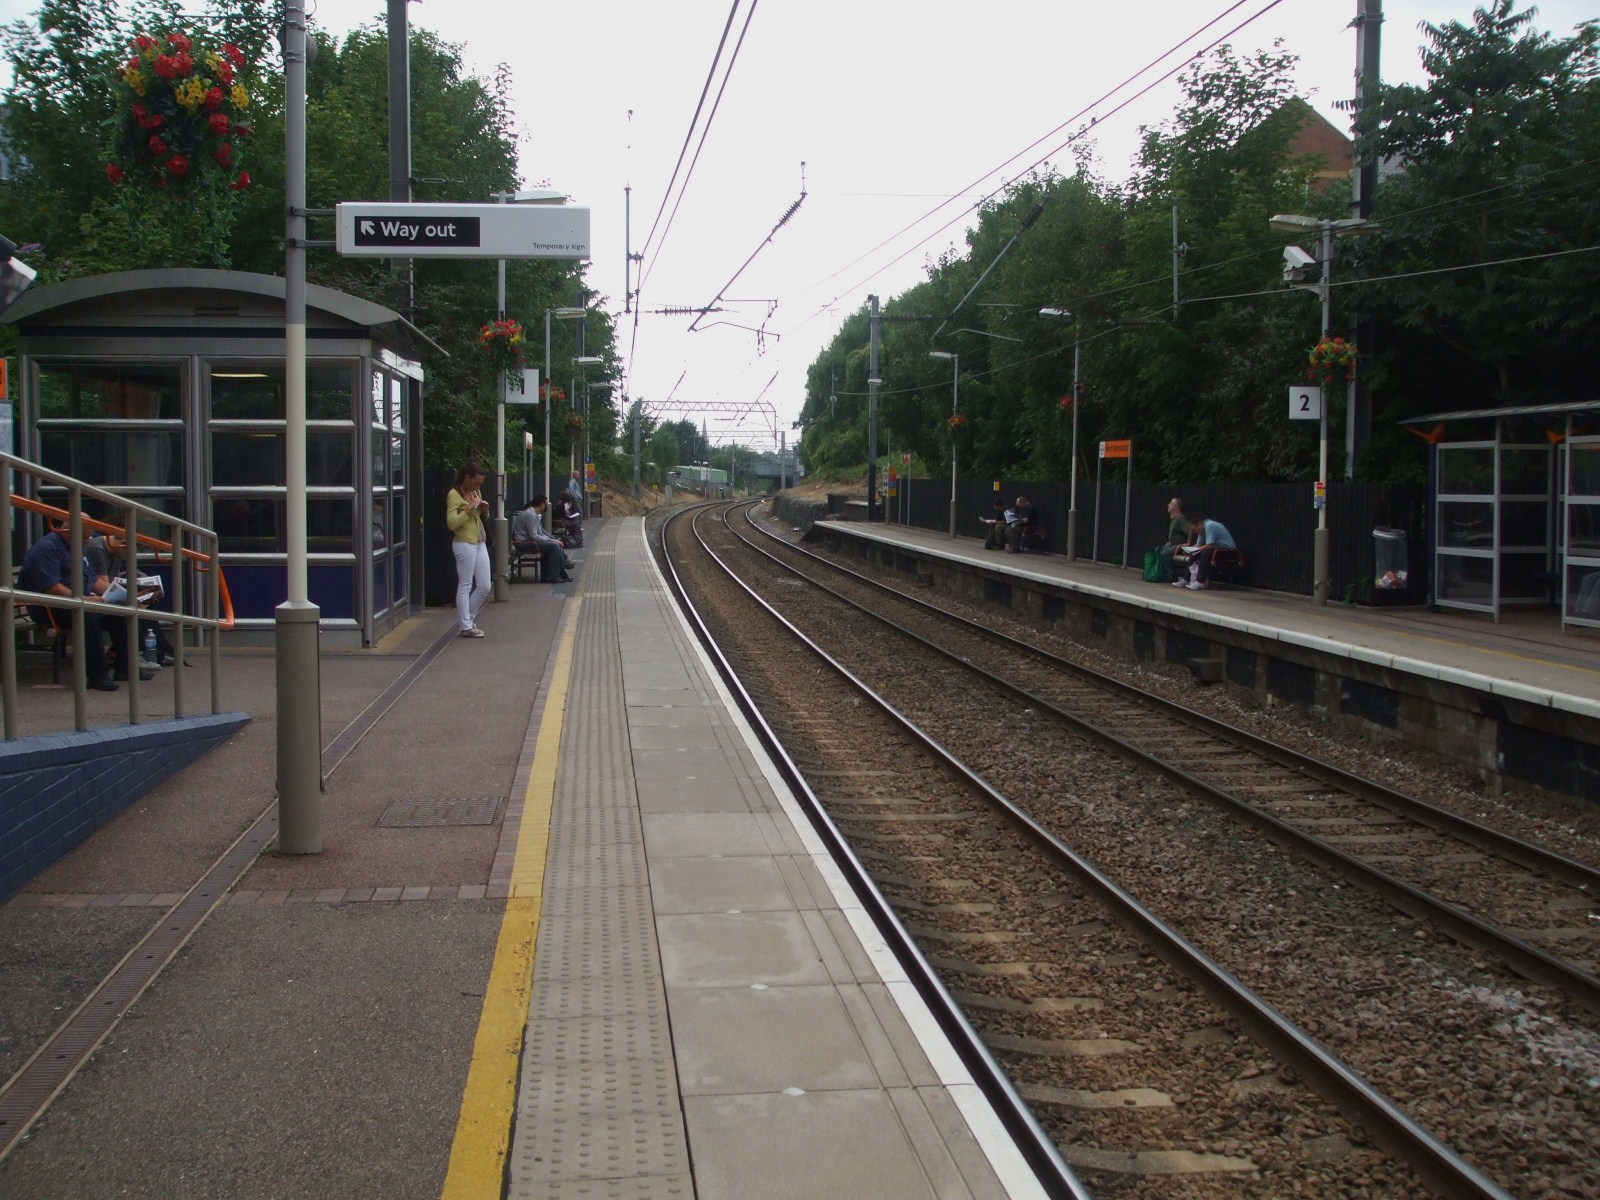 File:West Hampstead (Overground) stn look west.JPG - Wikimedia Commons